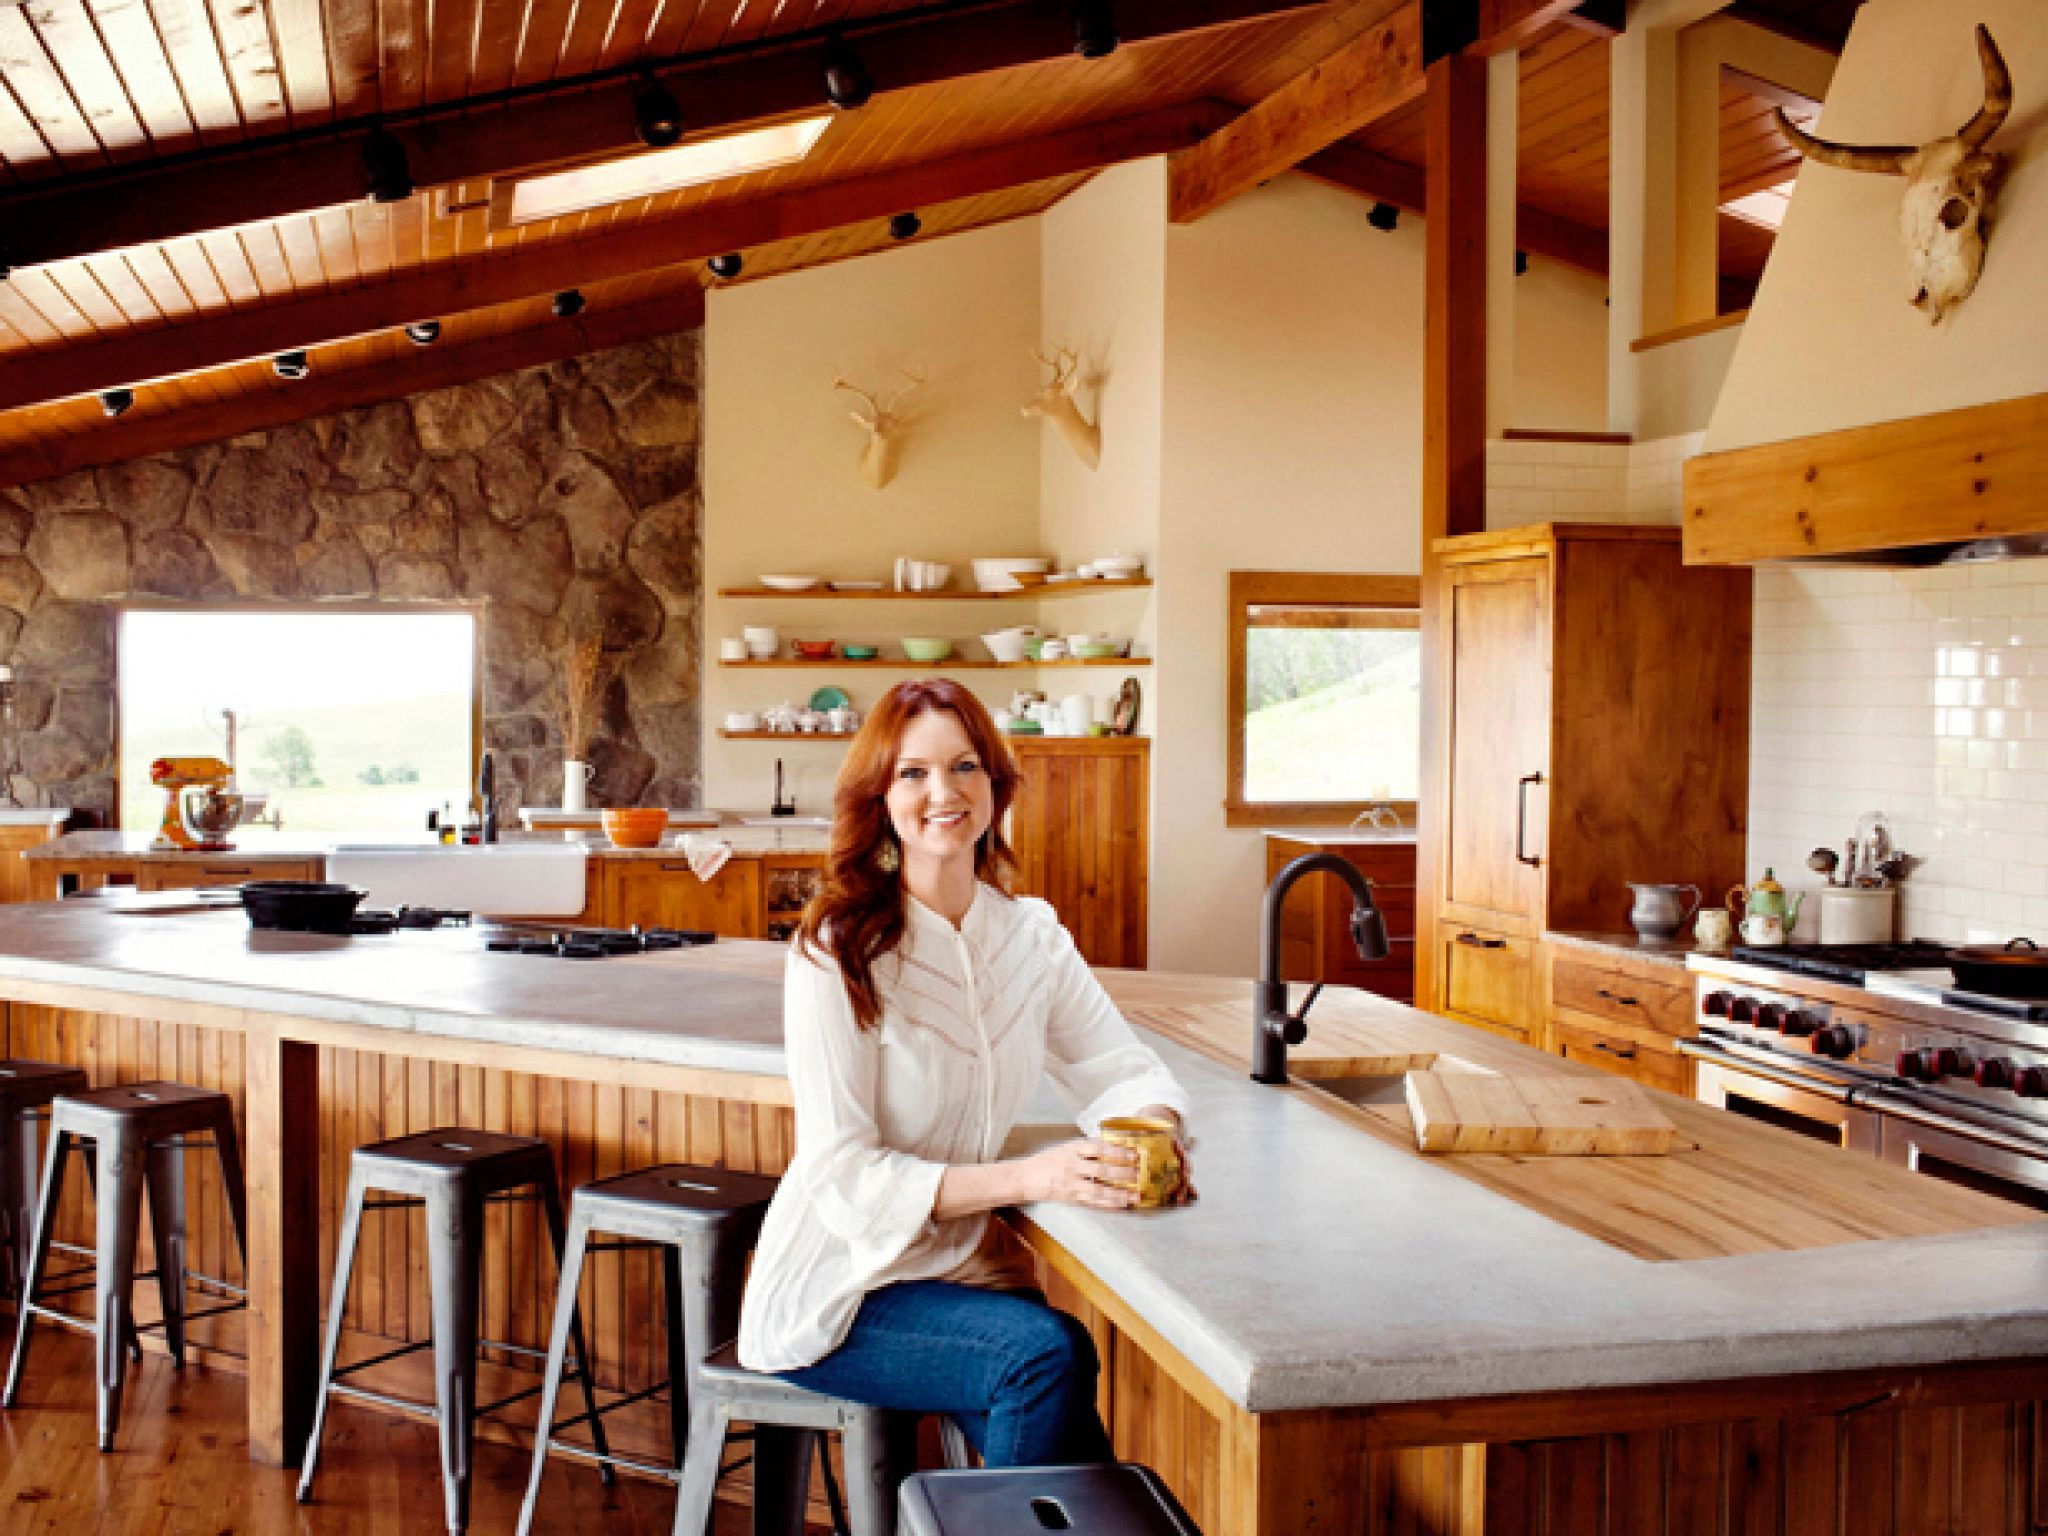 Ree Drummond S Kitchen Food Network Pioneer Woman Kitchen Pioneer Woman Ree Drummond Rustic Kitchen